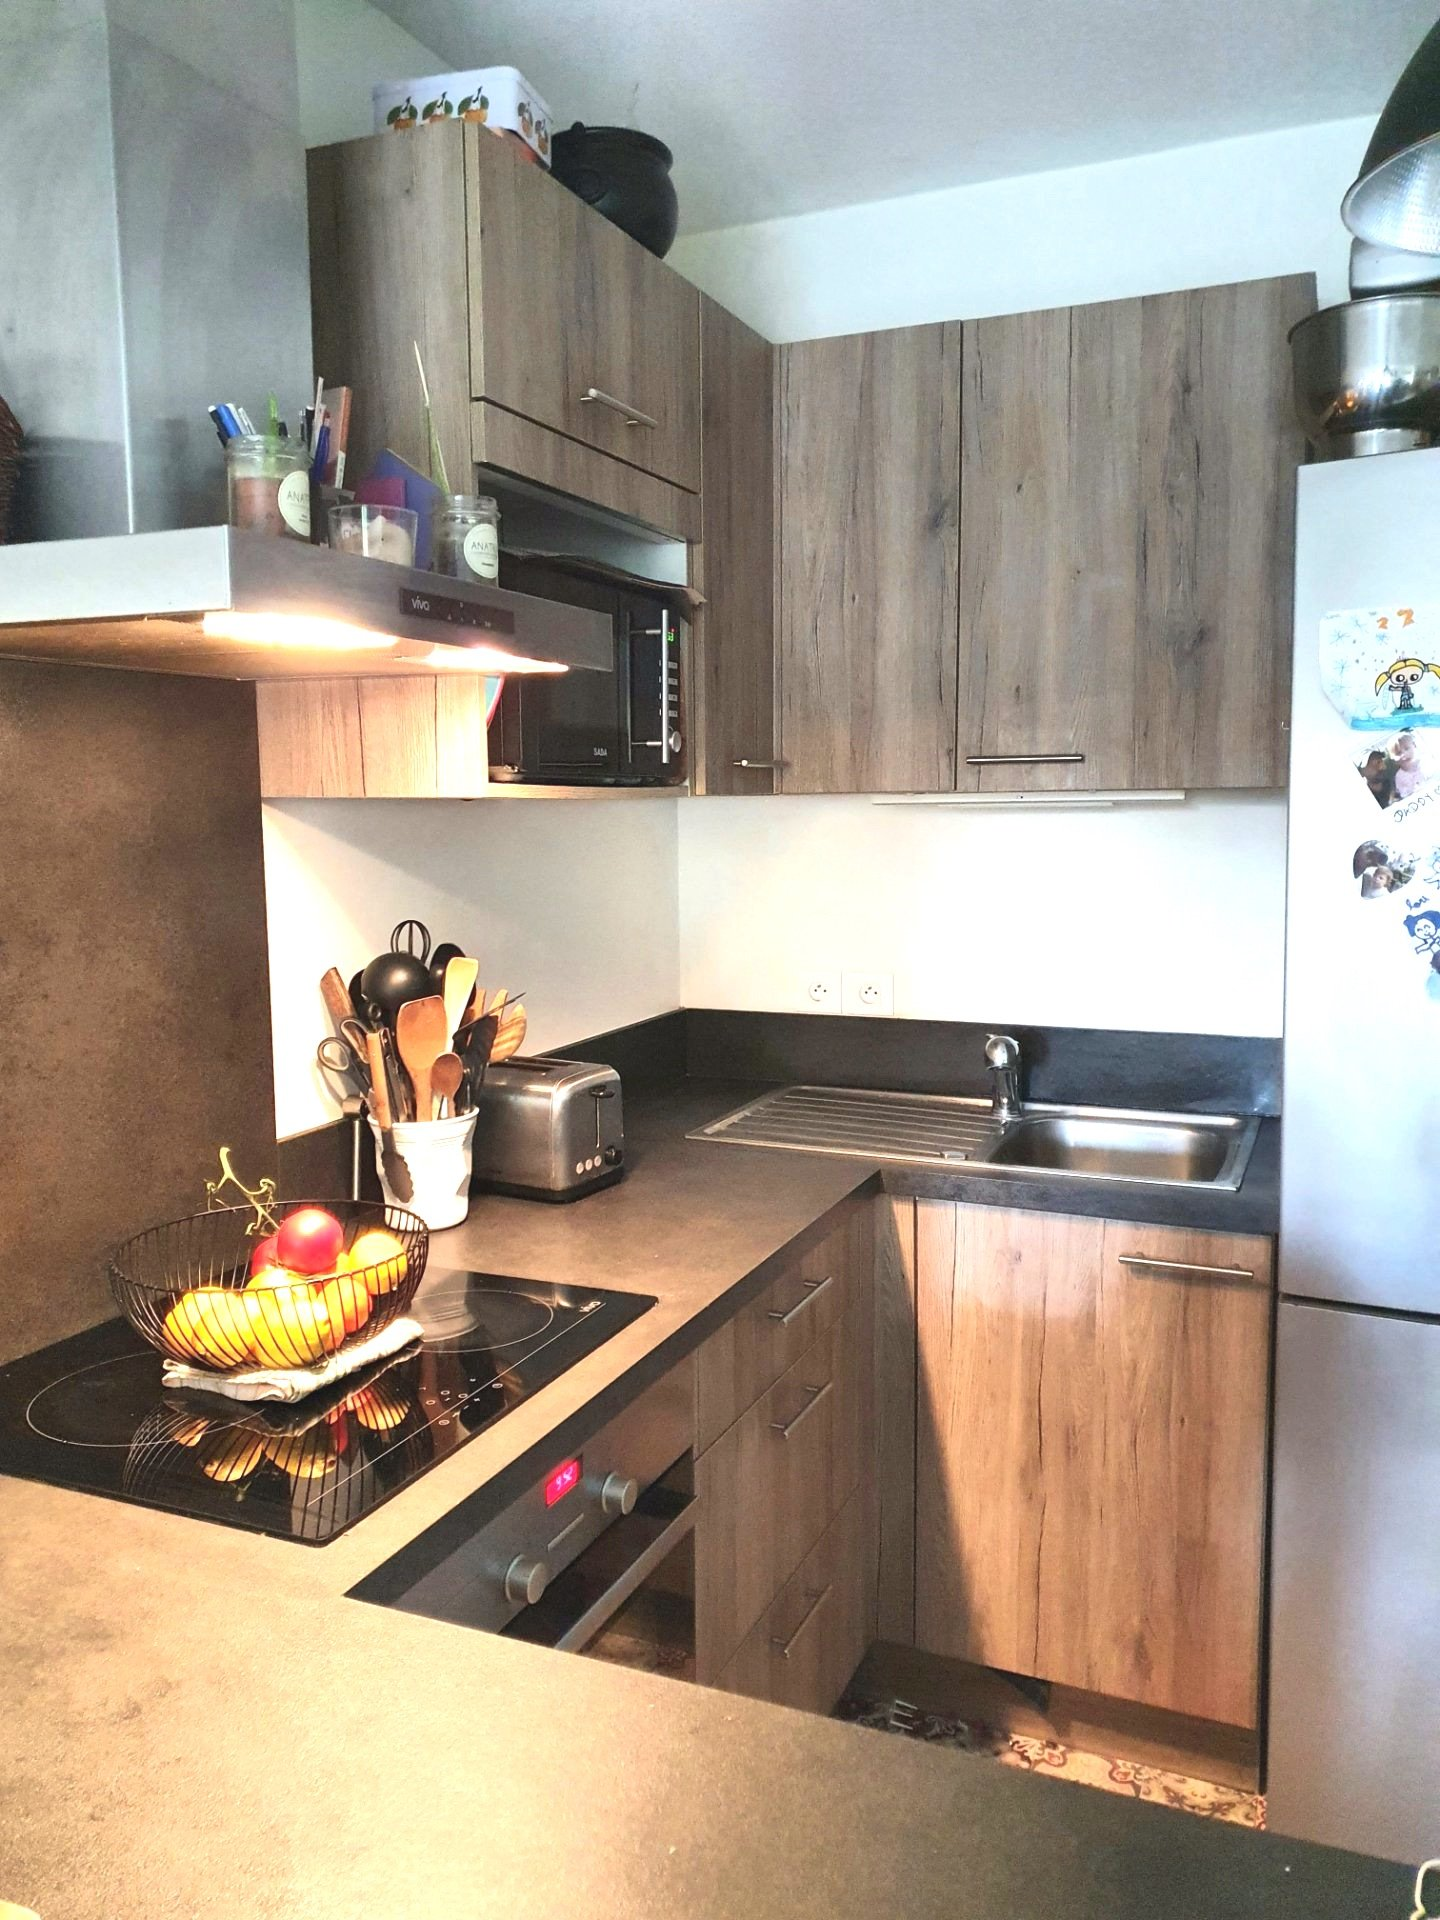 Le Cannet 2 bedroom of 64 Sqm with 200 Sqm of garden